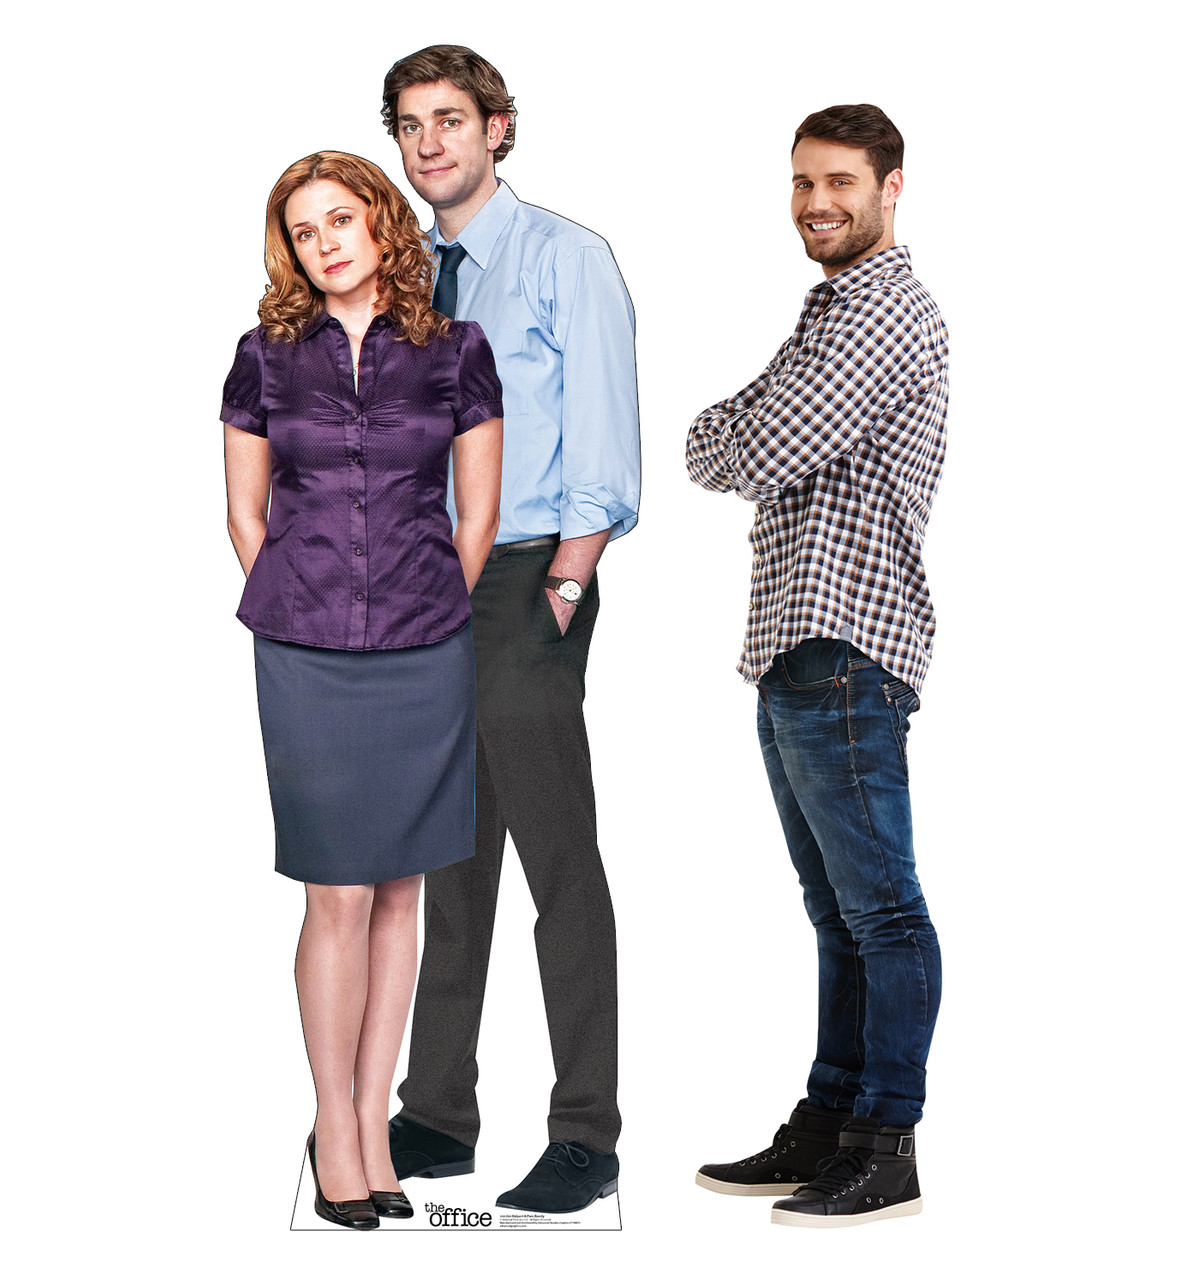 Life-size cardboard standee of Jim Halpert & Pam Beesly from the Office TV show with model.